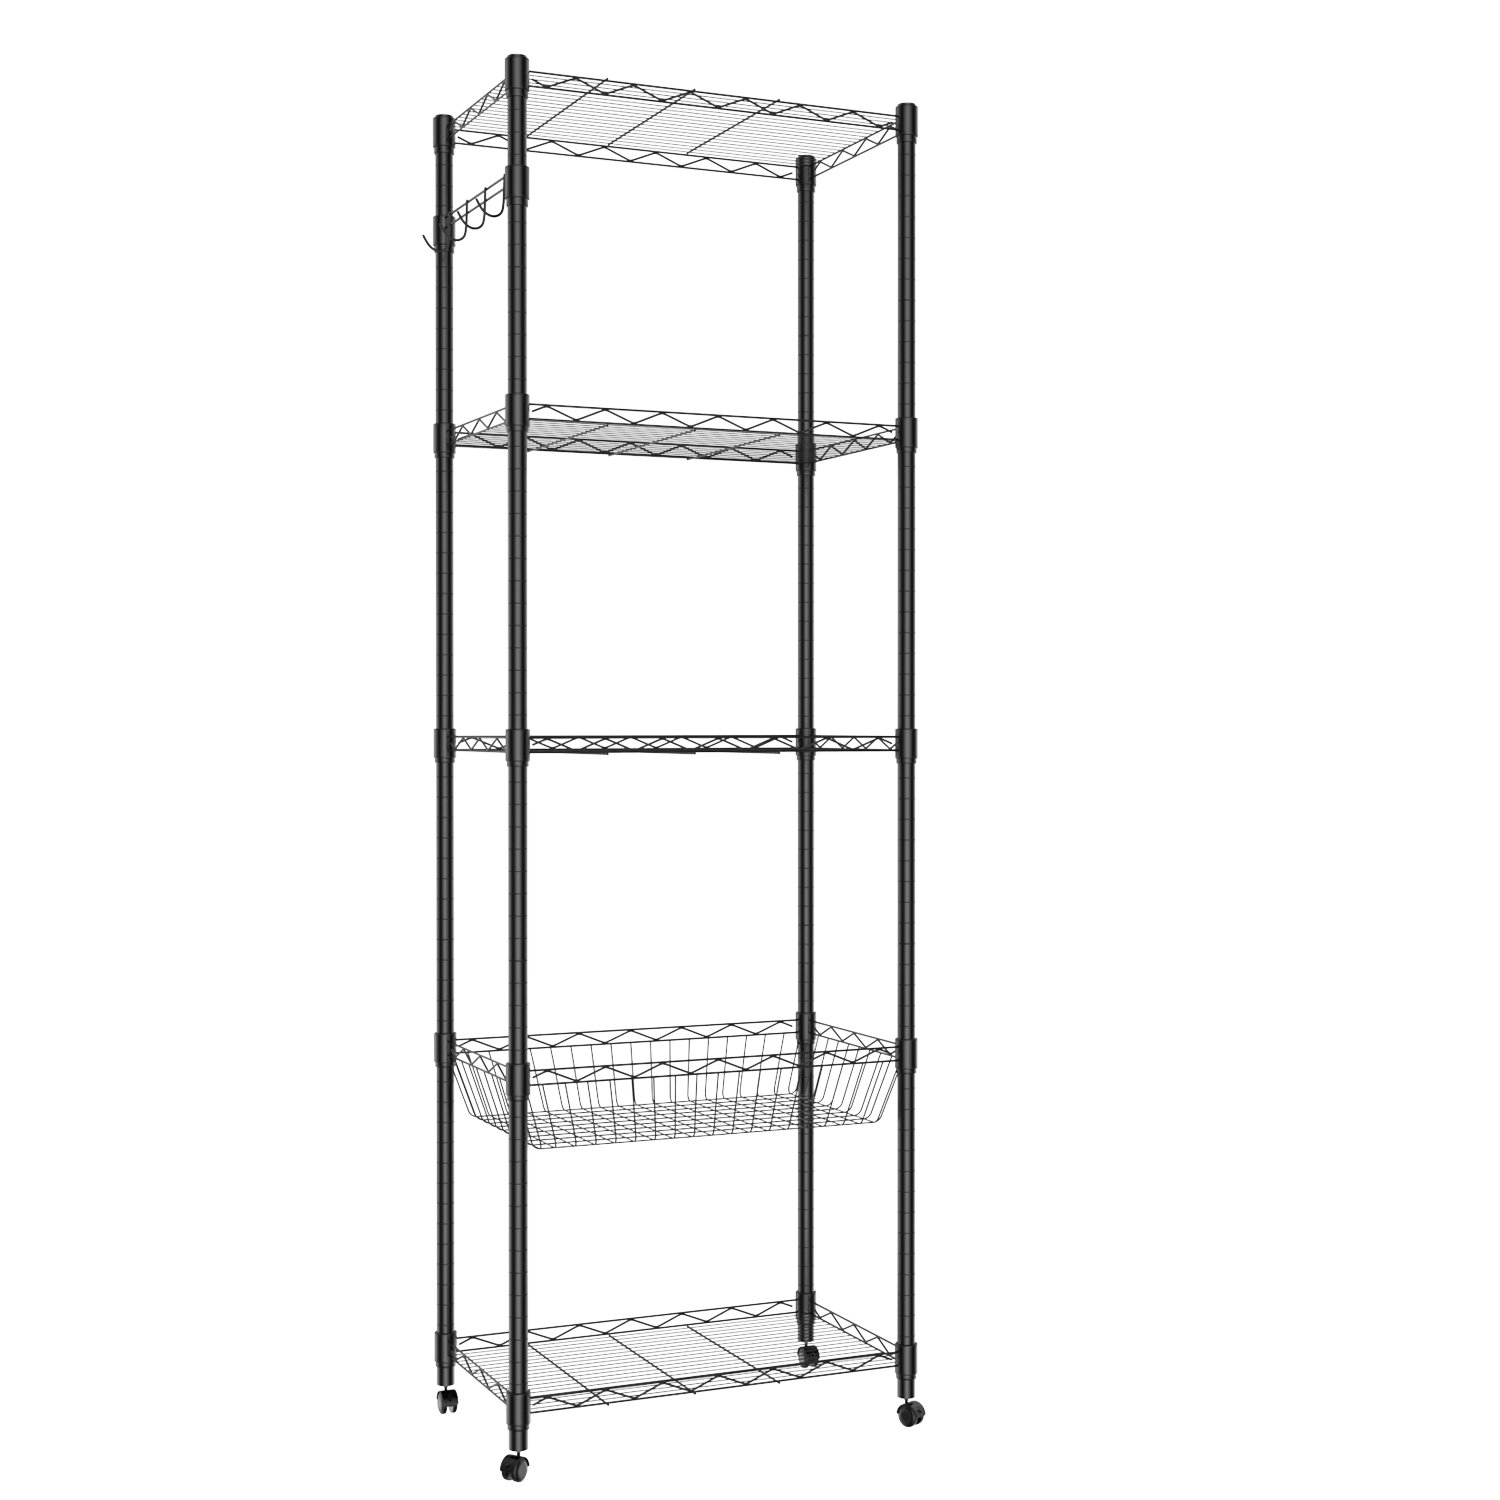 5 Tier Steel Wire Shelving with Wheels, Shelving Storage Organizer Rack for Kitchen Bathroom Balcony Living Room 71inch - Black [US STOCK]